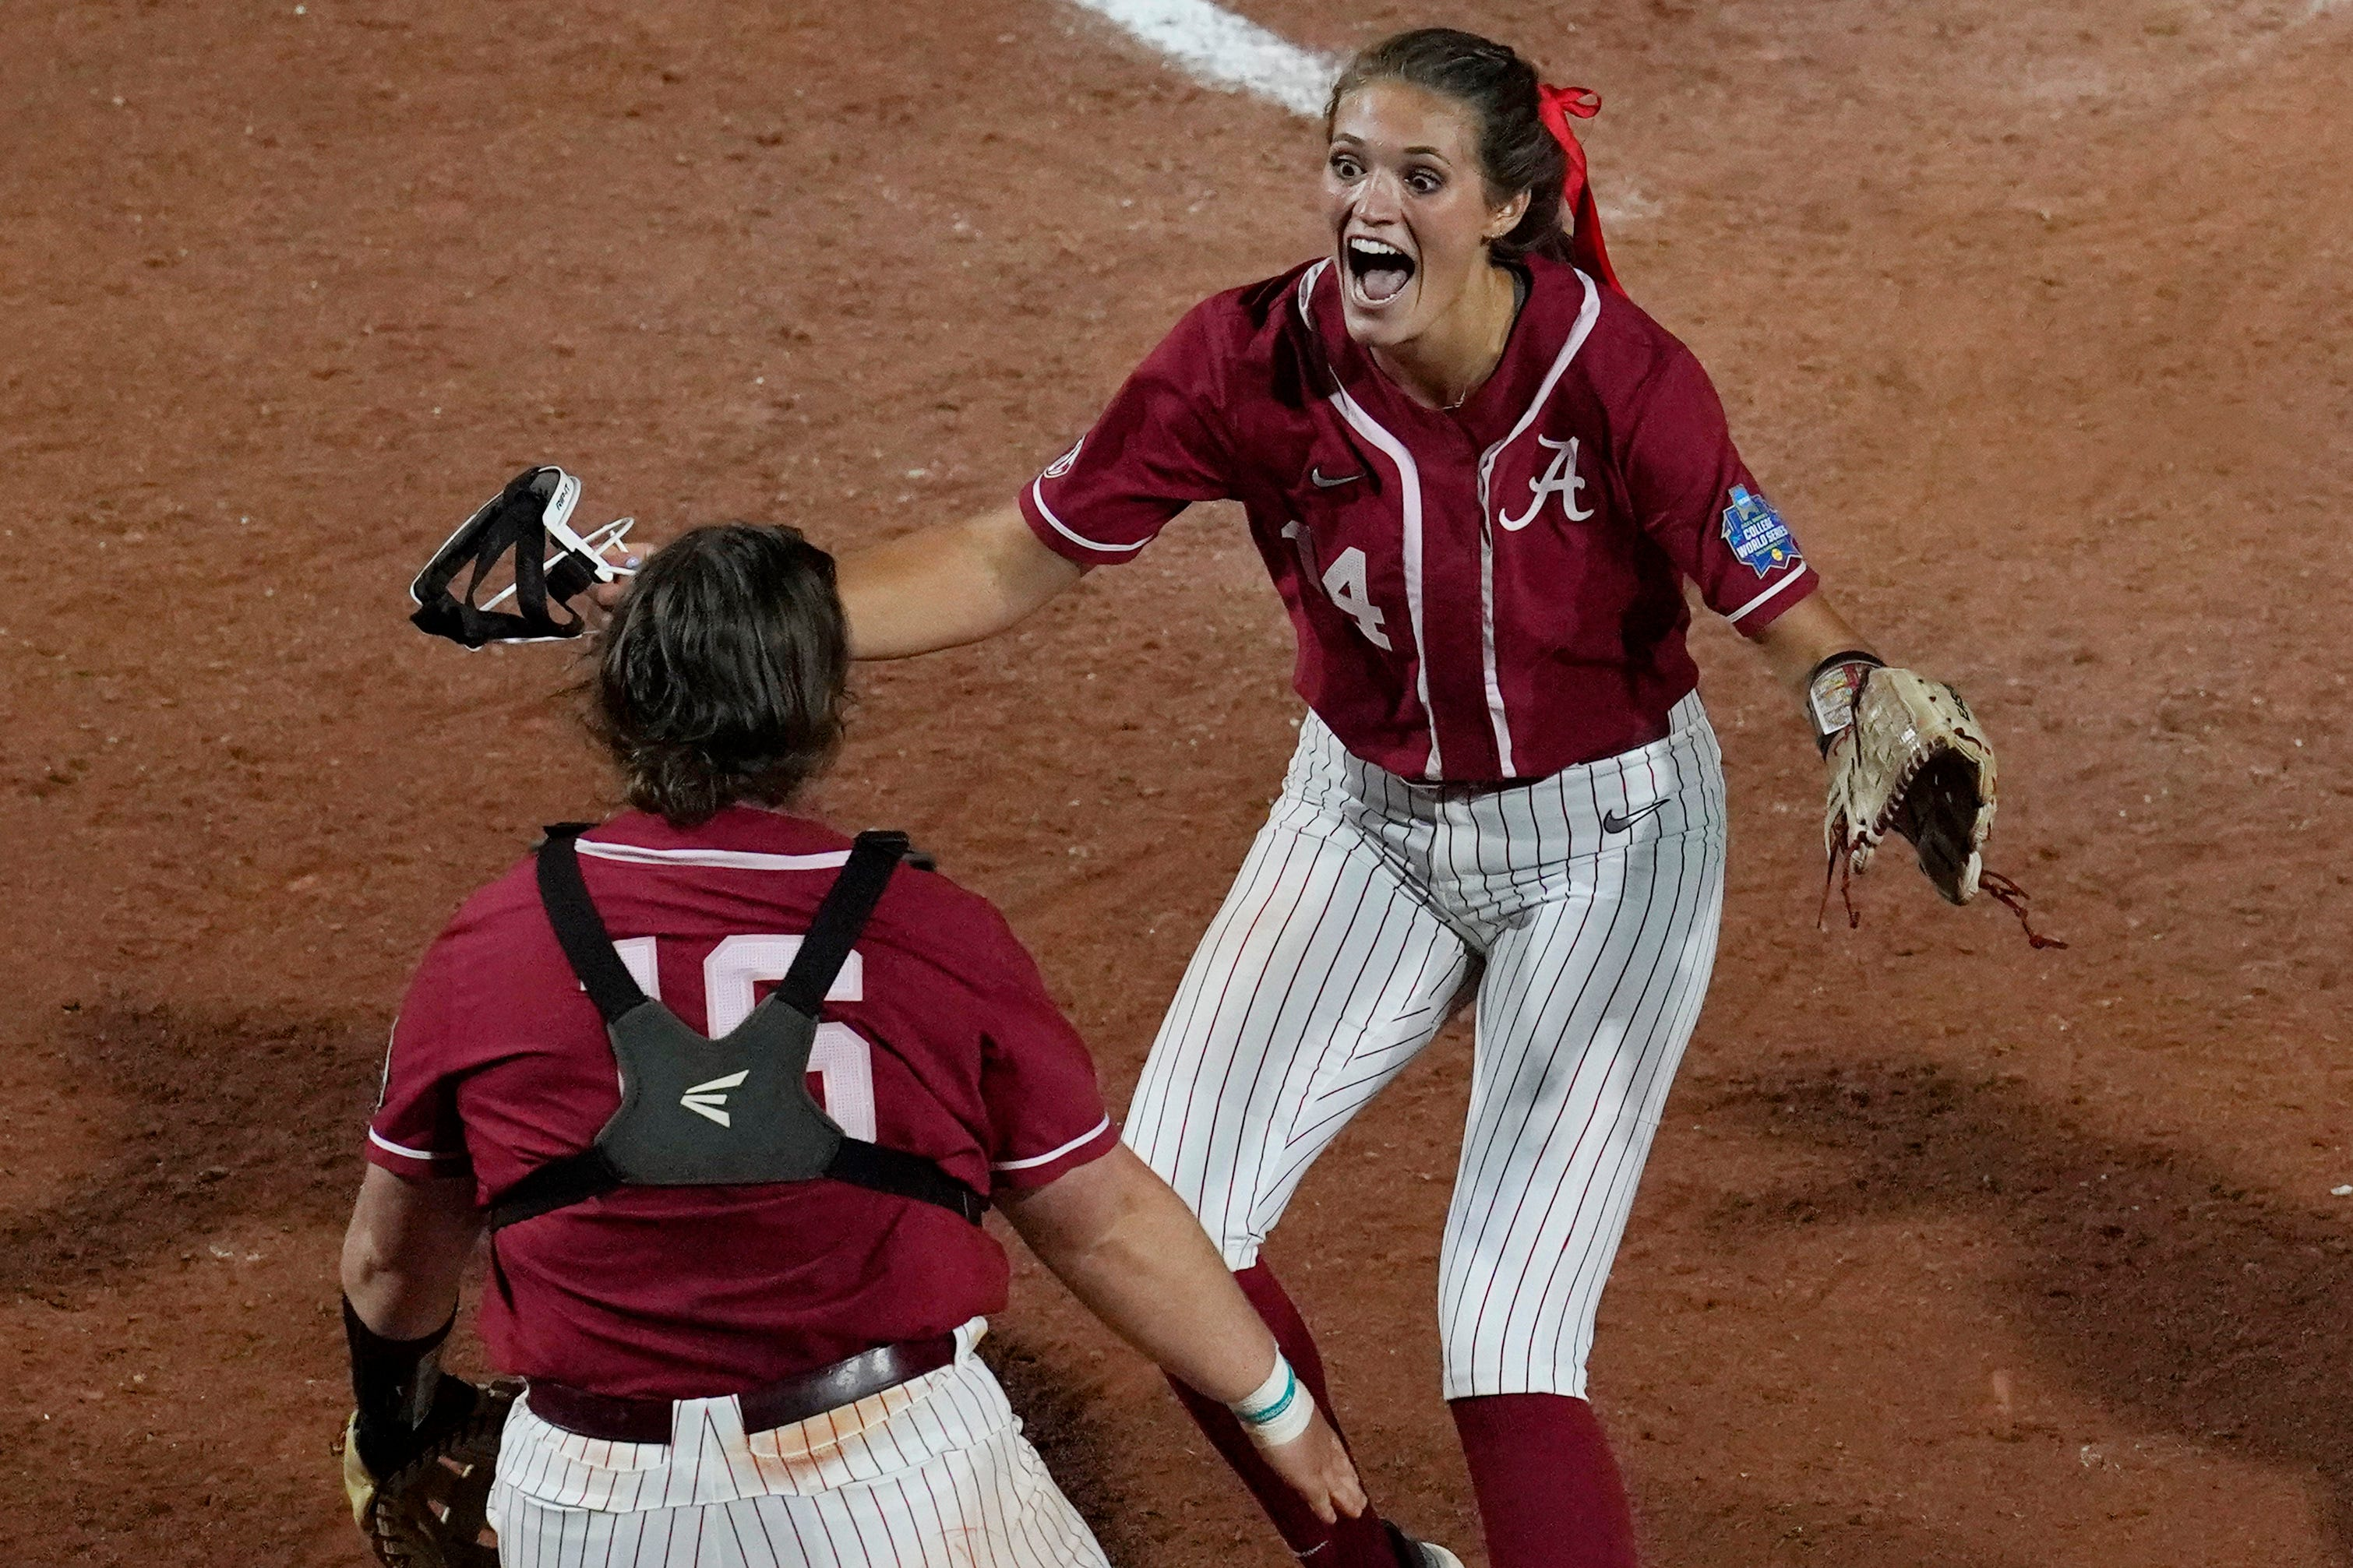 Montana Fouts throws perfect game as Alabama softball advances to WCWS semifinal with win over UCLA